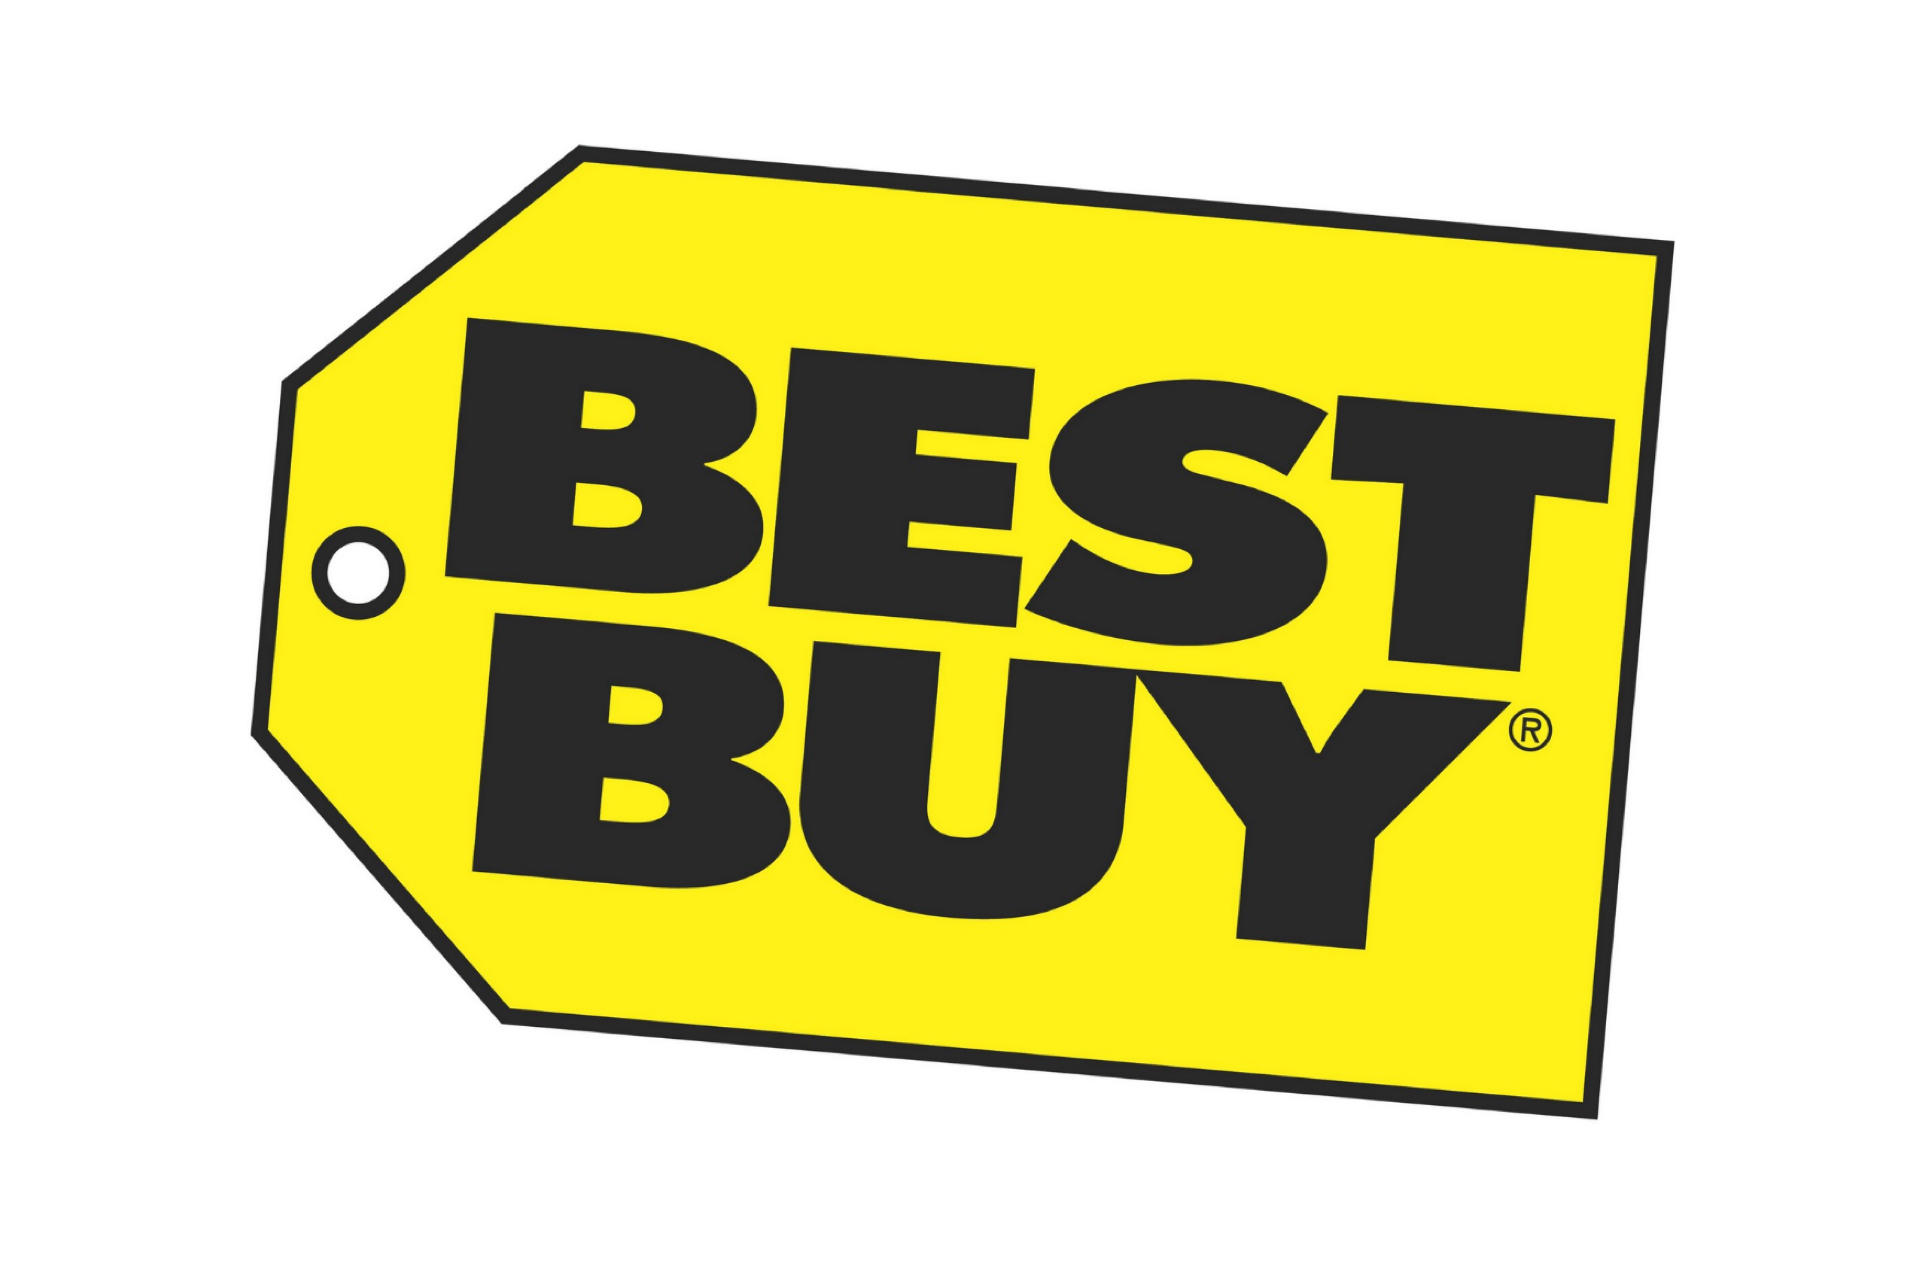 best buy st james in winnipeg, mb | best buy canada